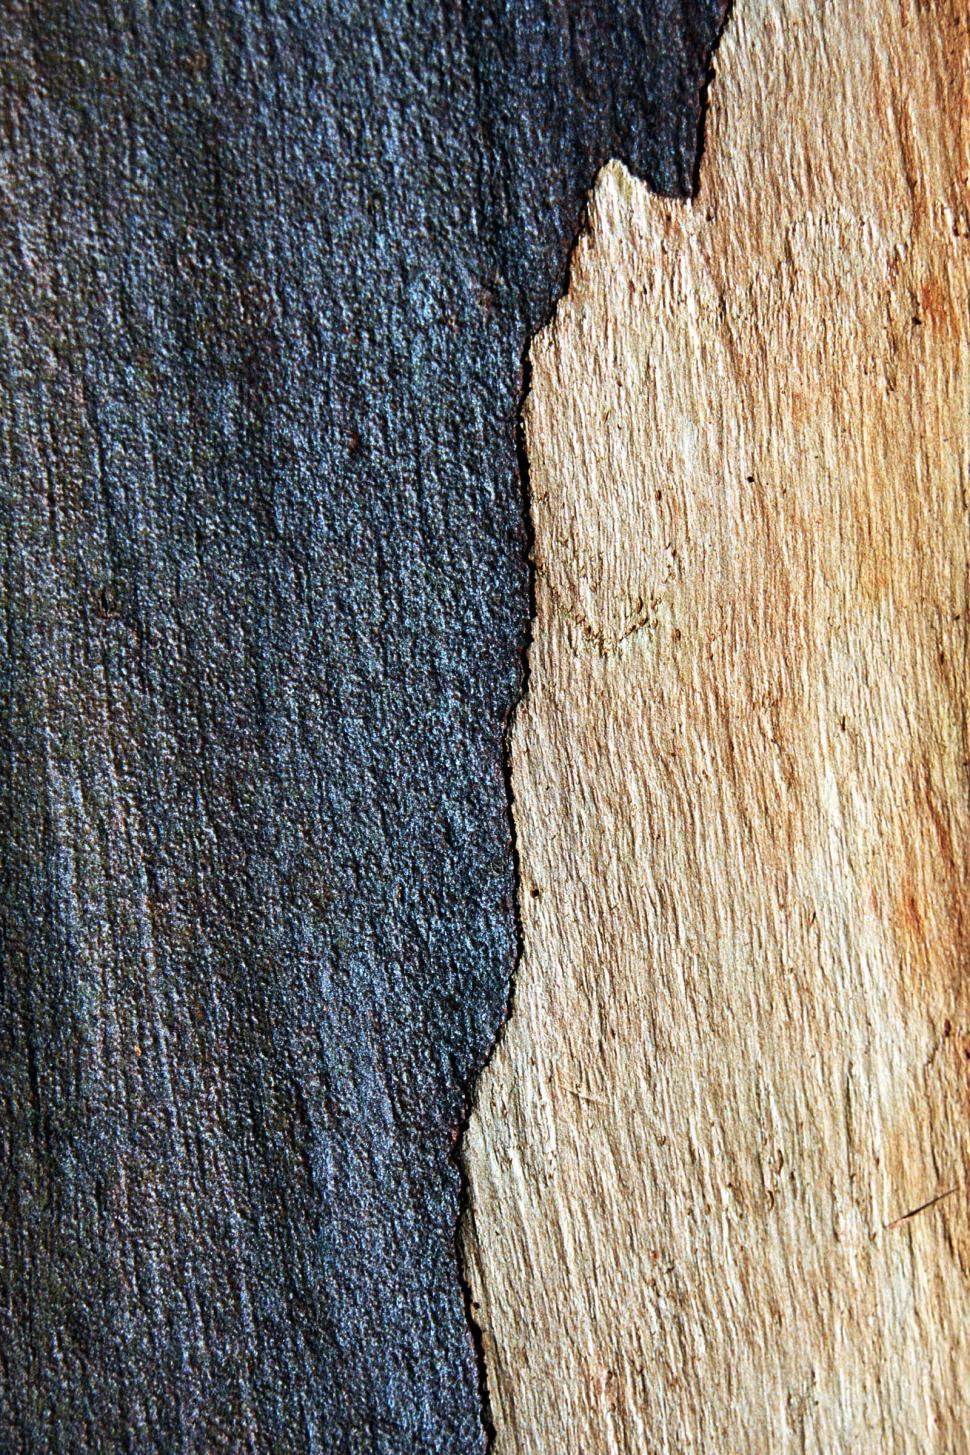 Download Free Stock HD Photo of Bark background Online